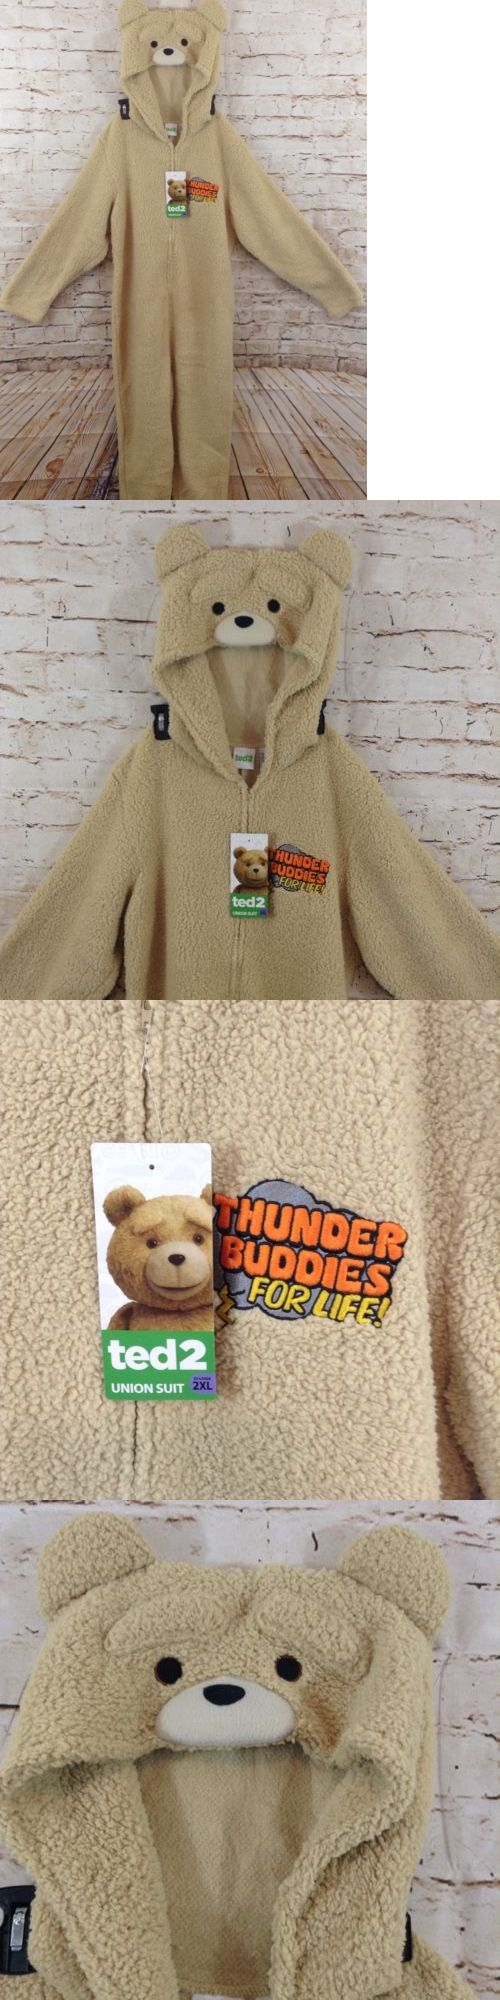 Sleepwear and Robes 166697: Ted Pajamas One Piece Thunder Buddies Life Mens 2Xl Bear New Costume Xxl -> BUY IT NOW ONLY: $34.19 on eBay!